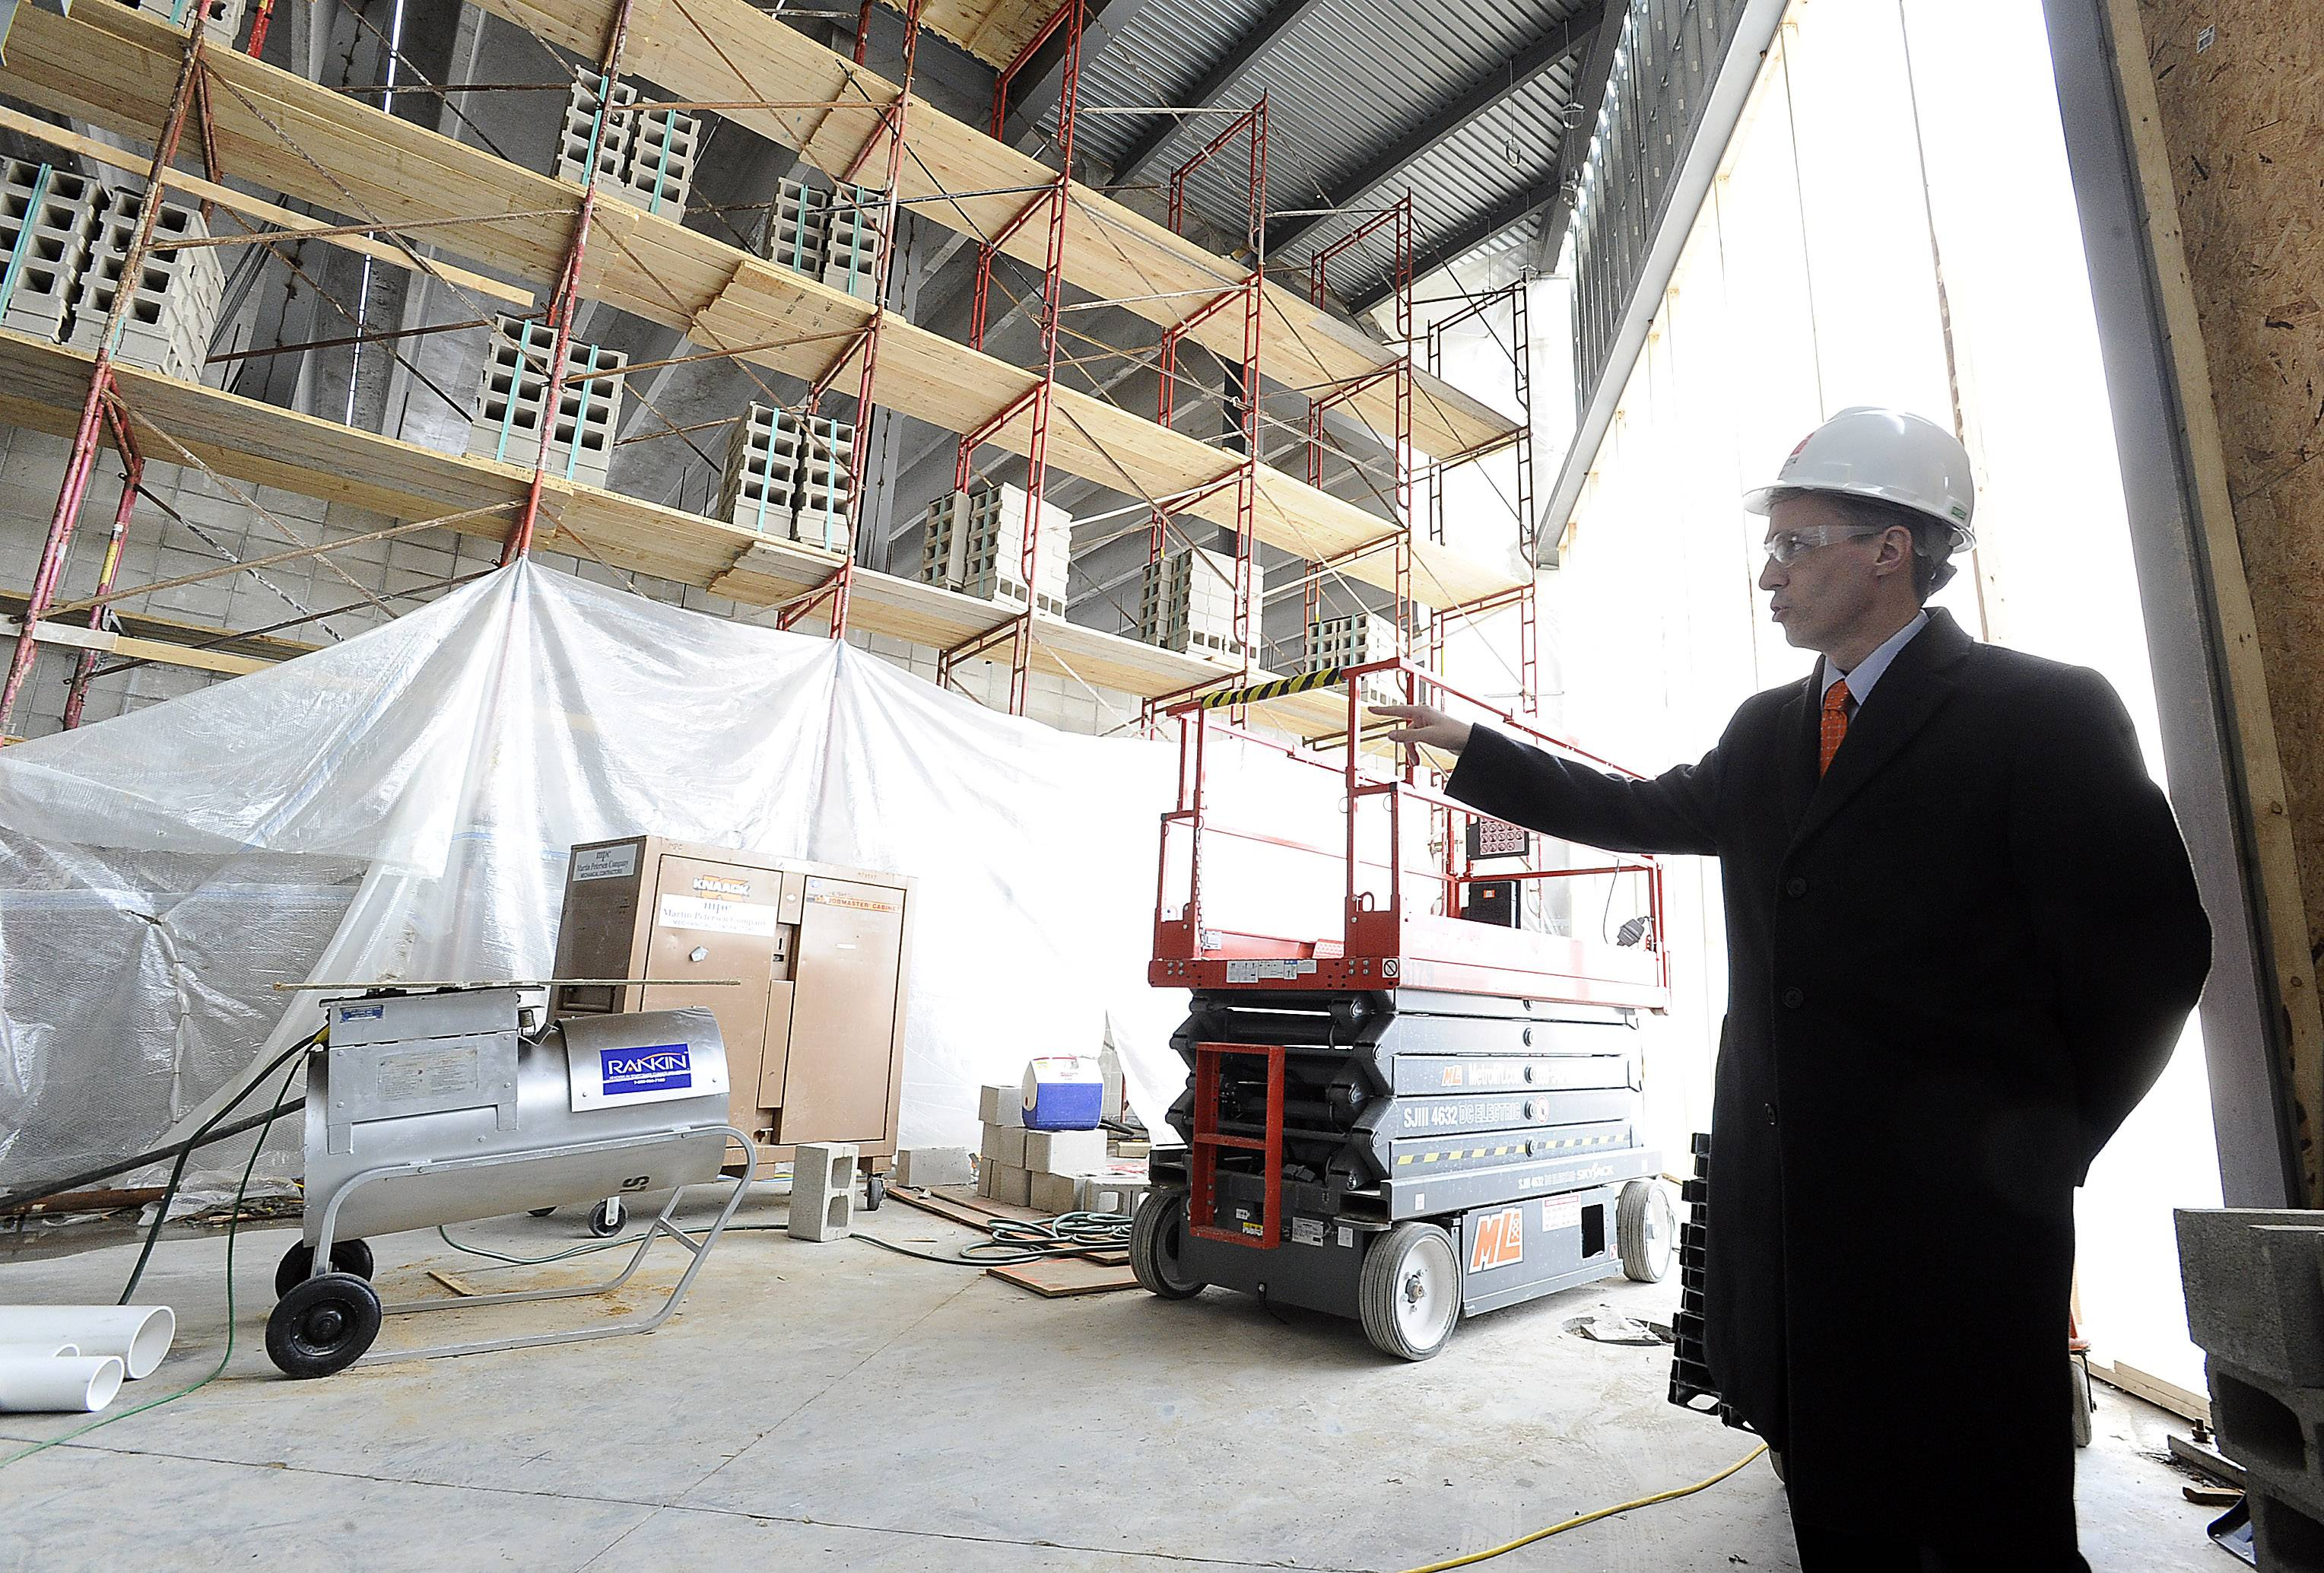 Ted Birren, director of operations at District 214, points out where the new lockers and dressing rooms will go.